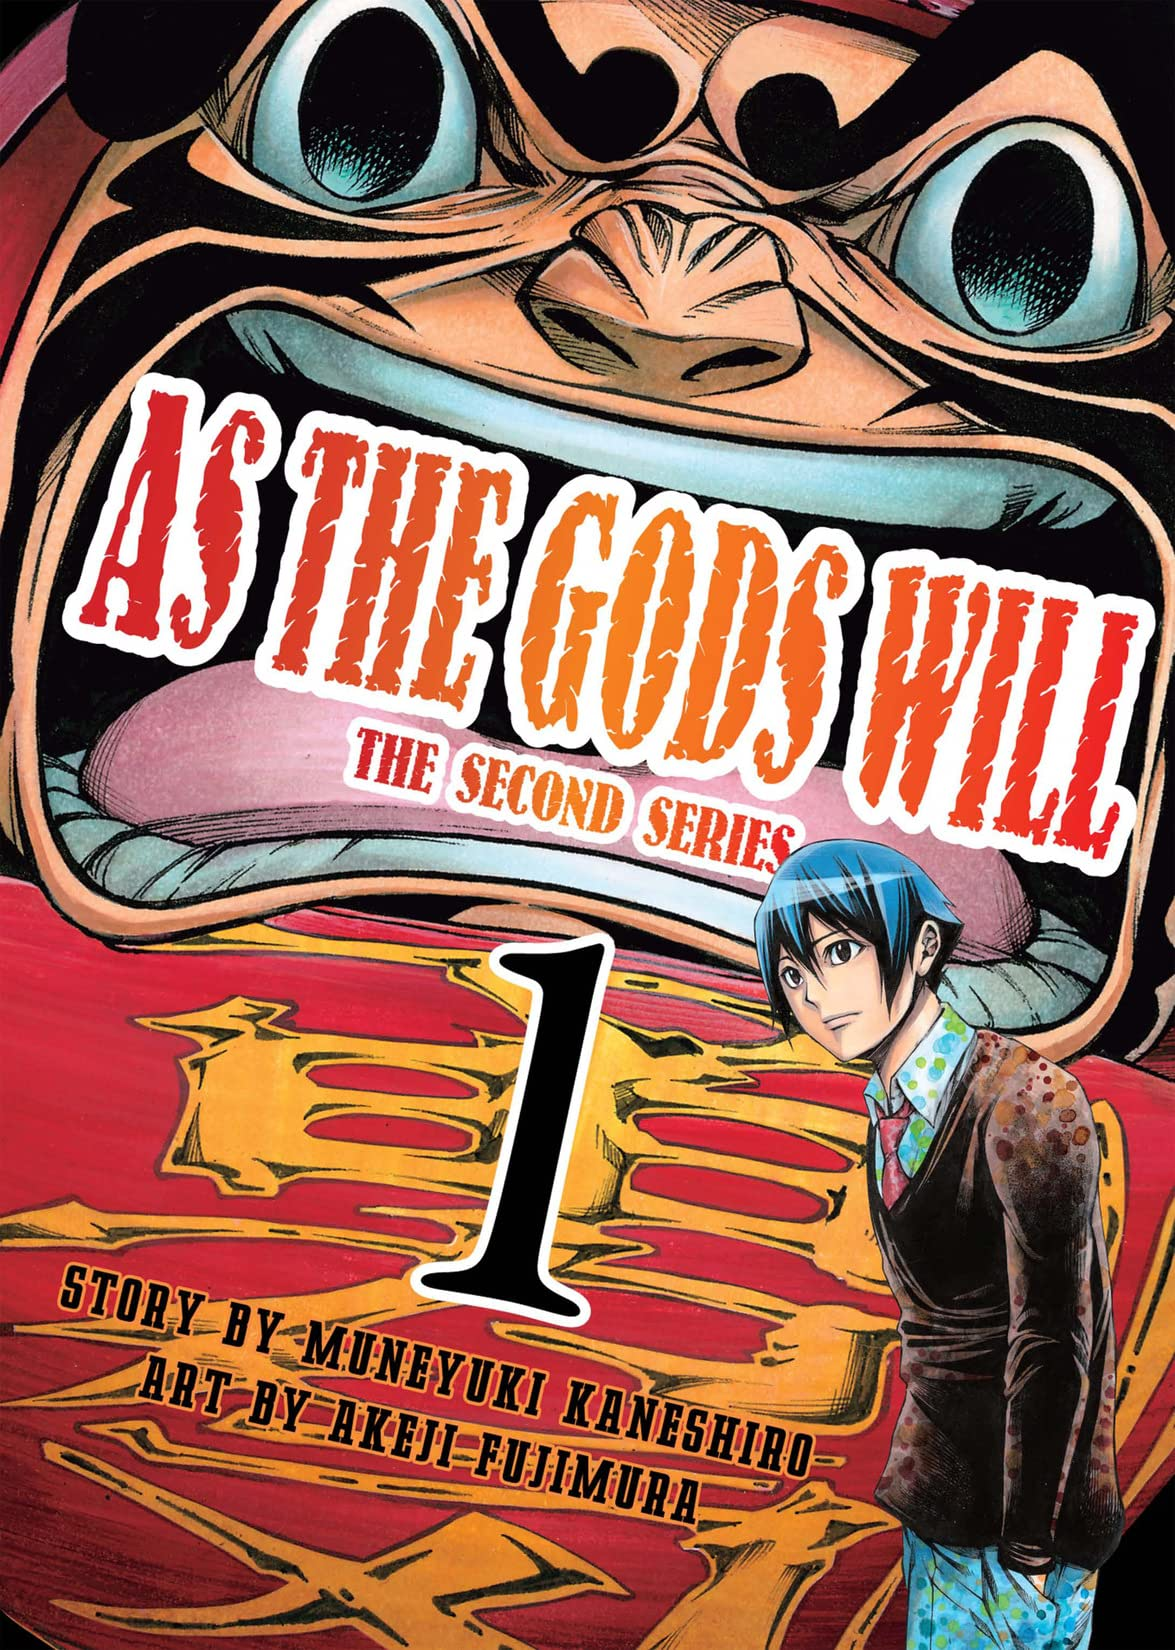 As The Gods Will: The Second Series Vol. 1